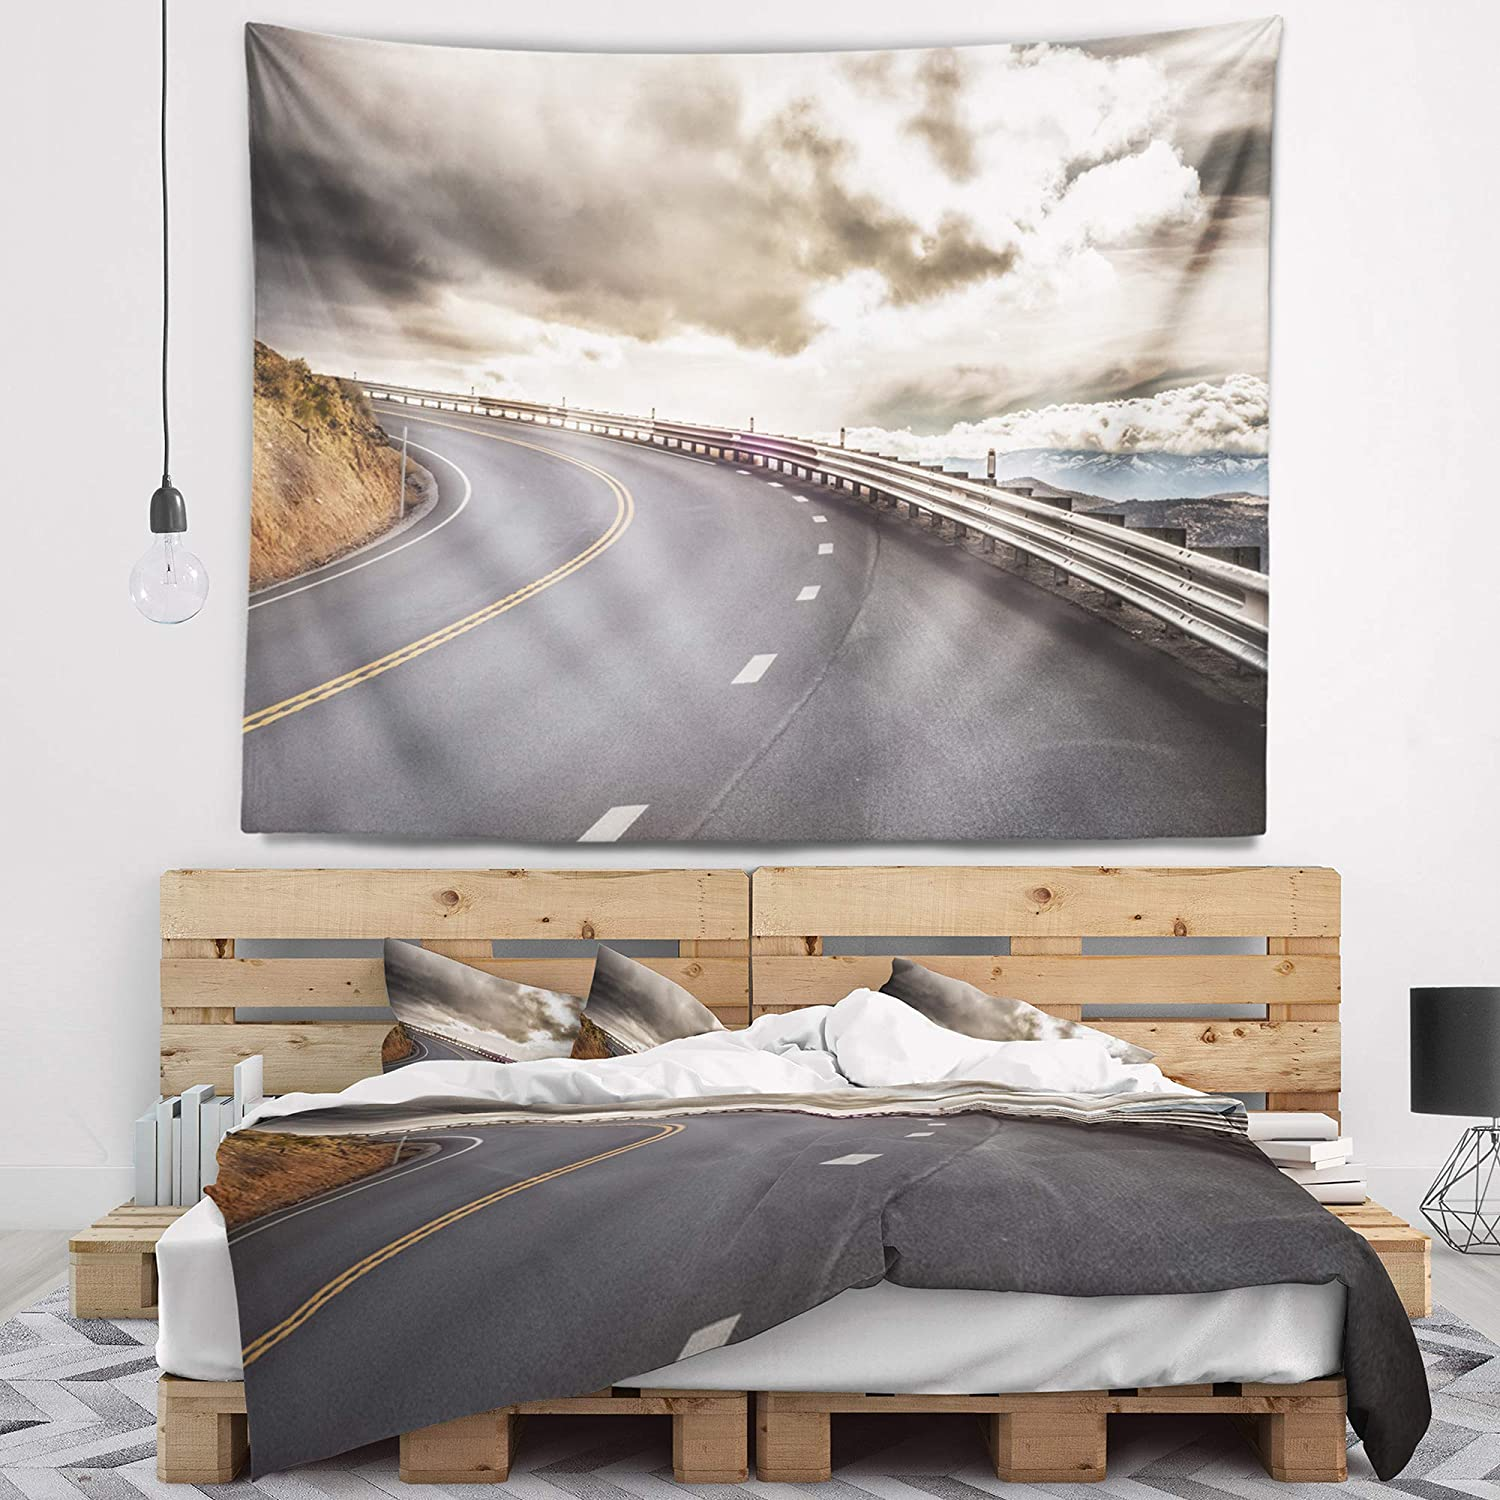 Designart TAP7058-60-50  Sky Road Curve Landscape Photography Blanket D/écor Art for Home and Office Wall Tapestry Large x 50 in 60 in Created On Lightweight Polyester Fabric